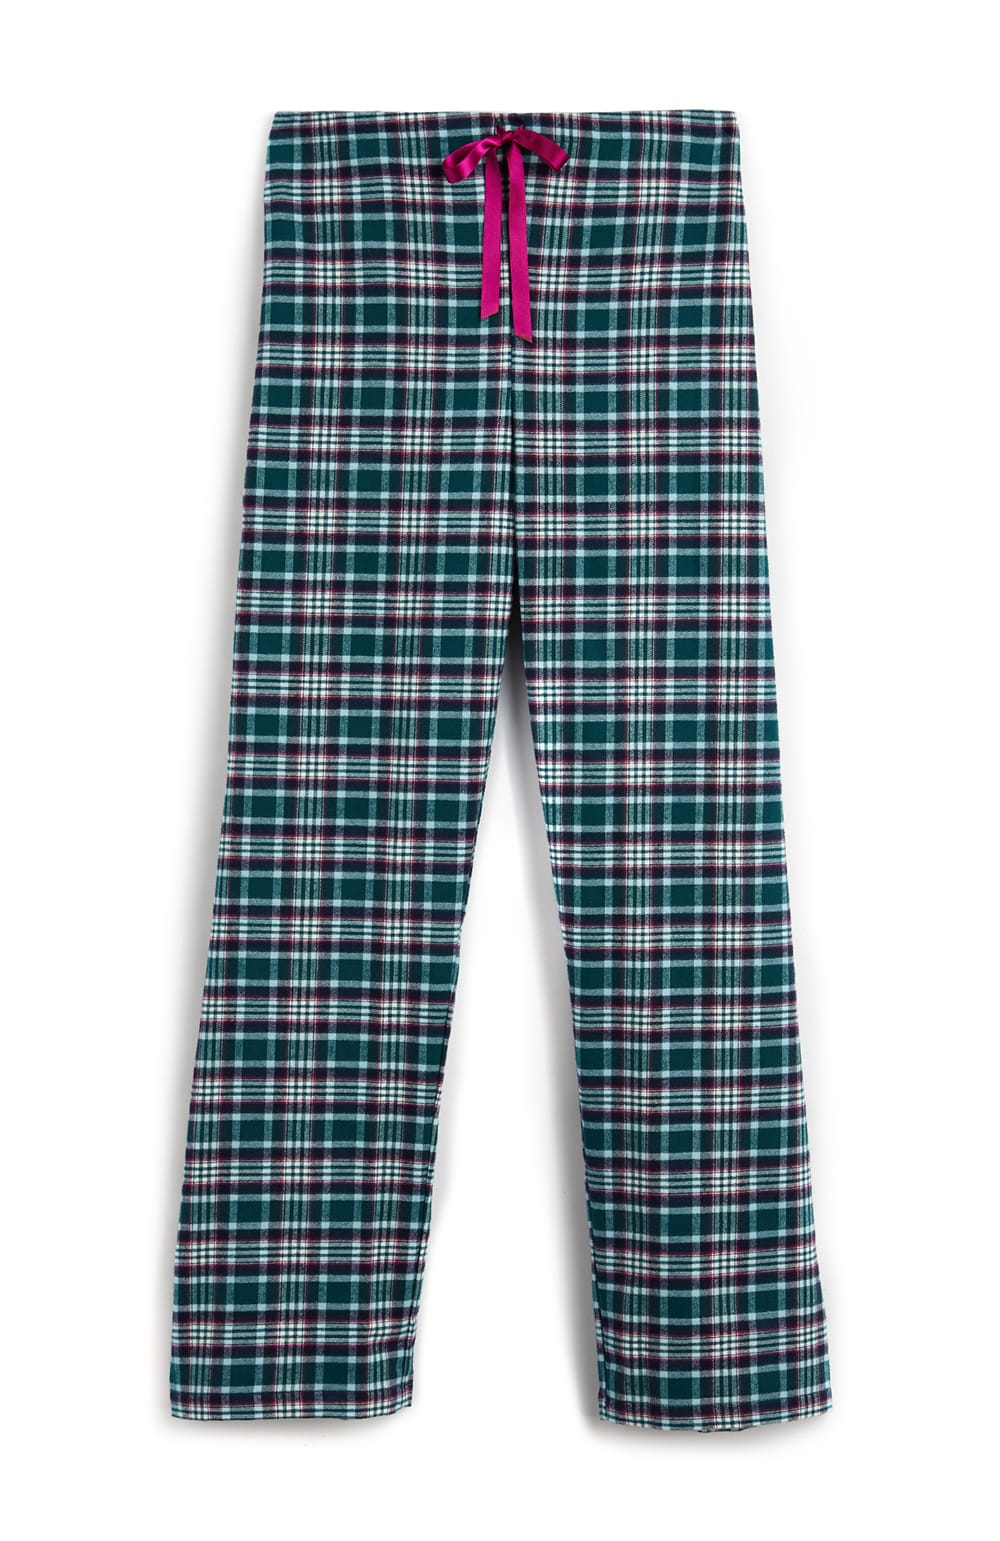 Brushed Tartan Pyjama Trousers (tltf) - Purbeck | Bonsoir of London